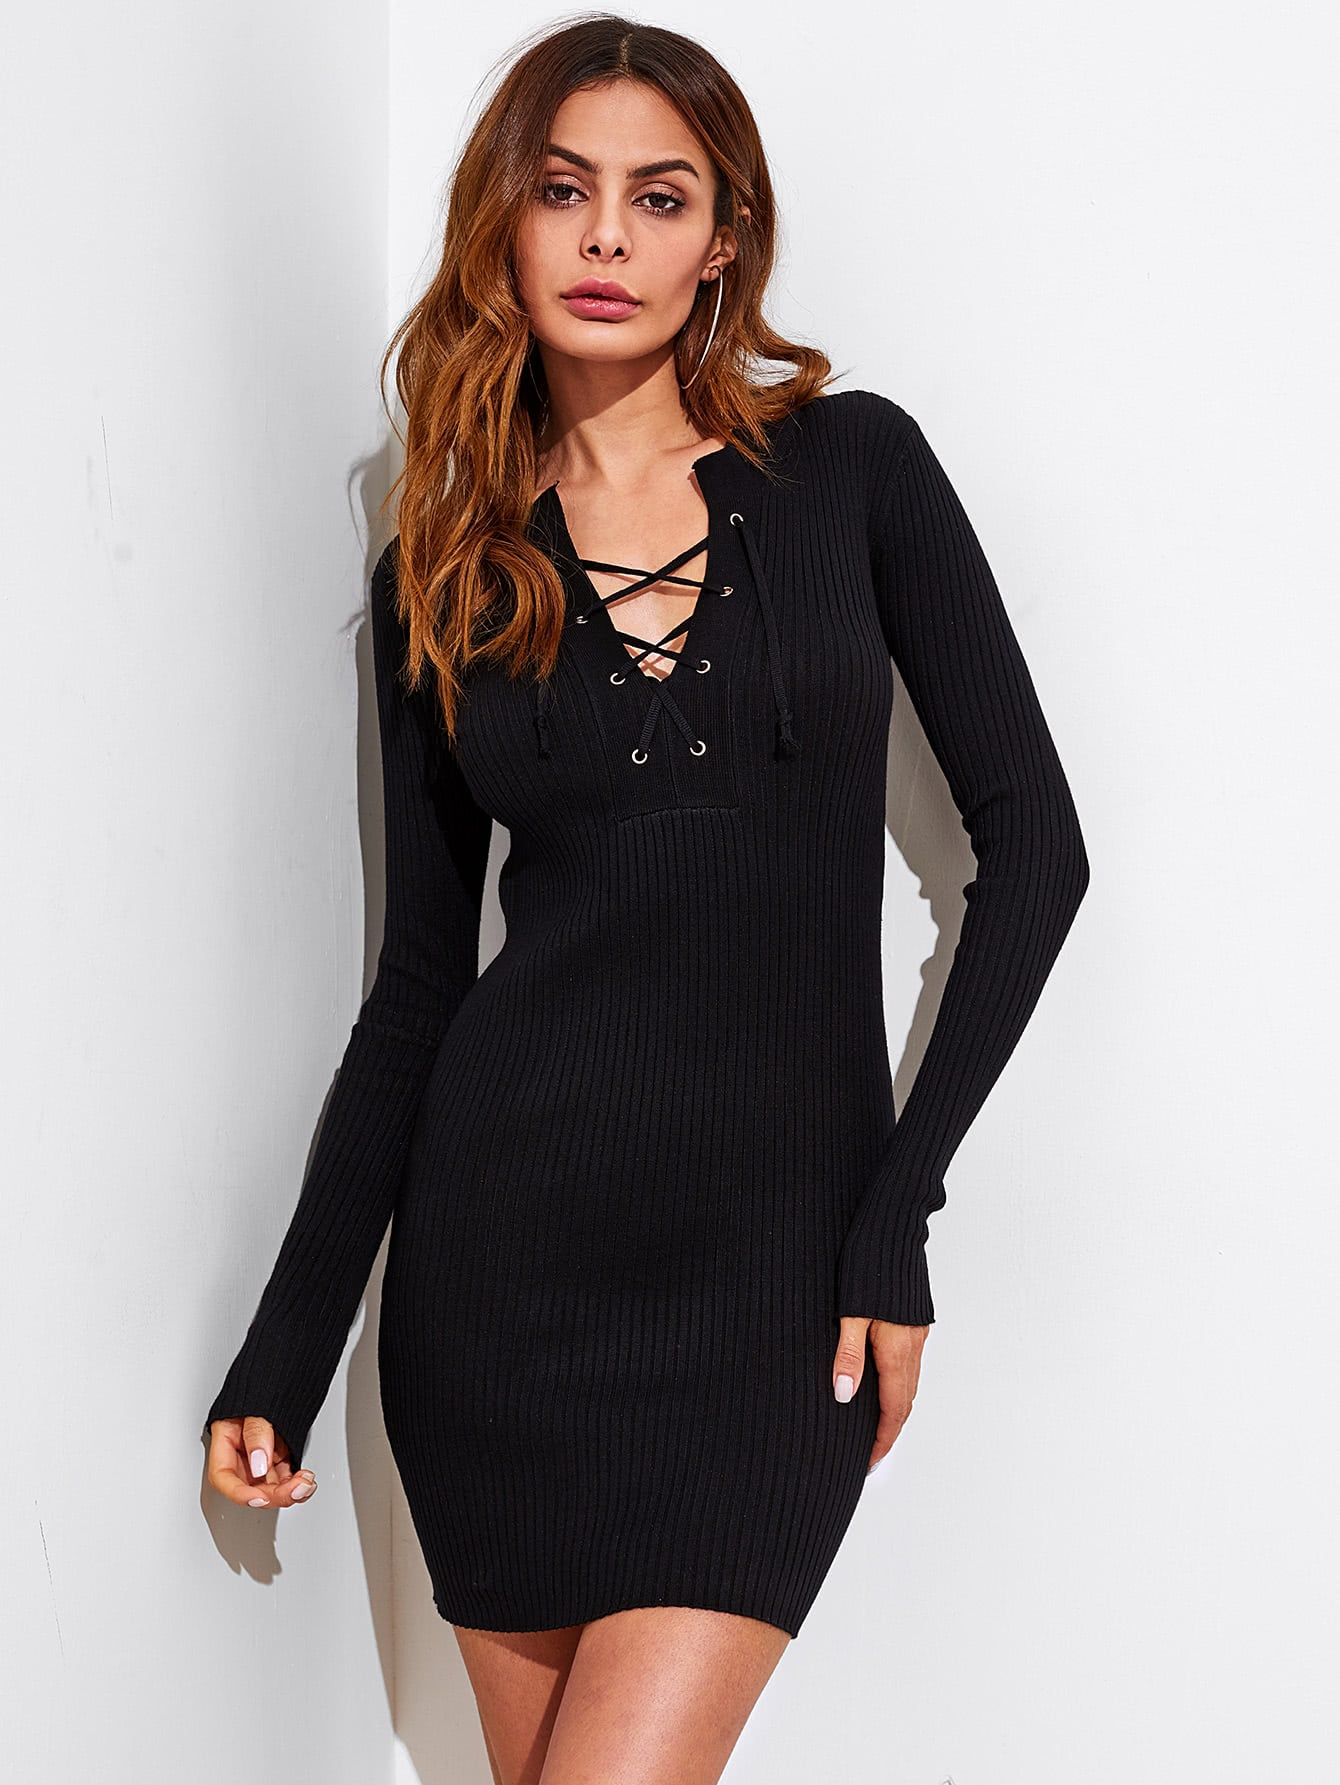 Eyelet Lace Up V Neck Ribbed Trim Sweater Dress